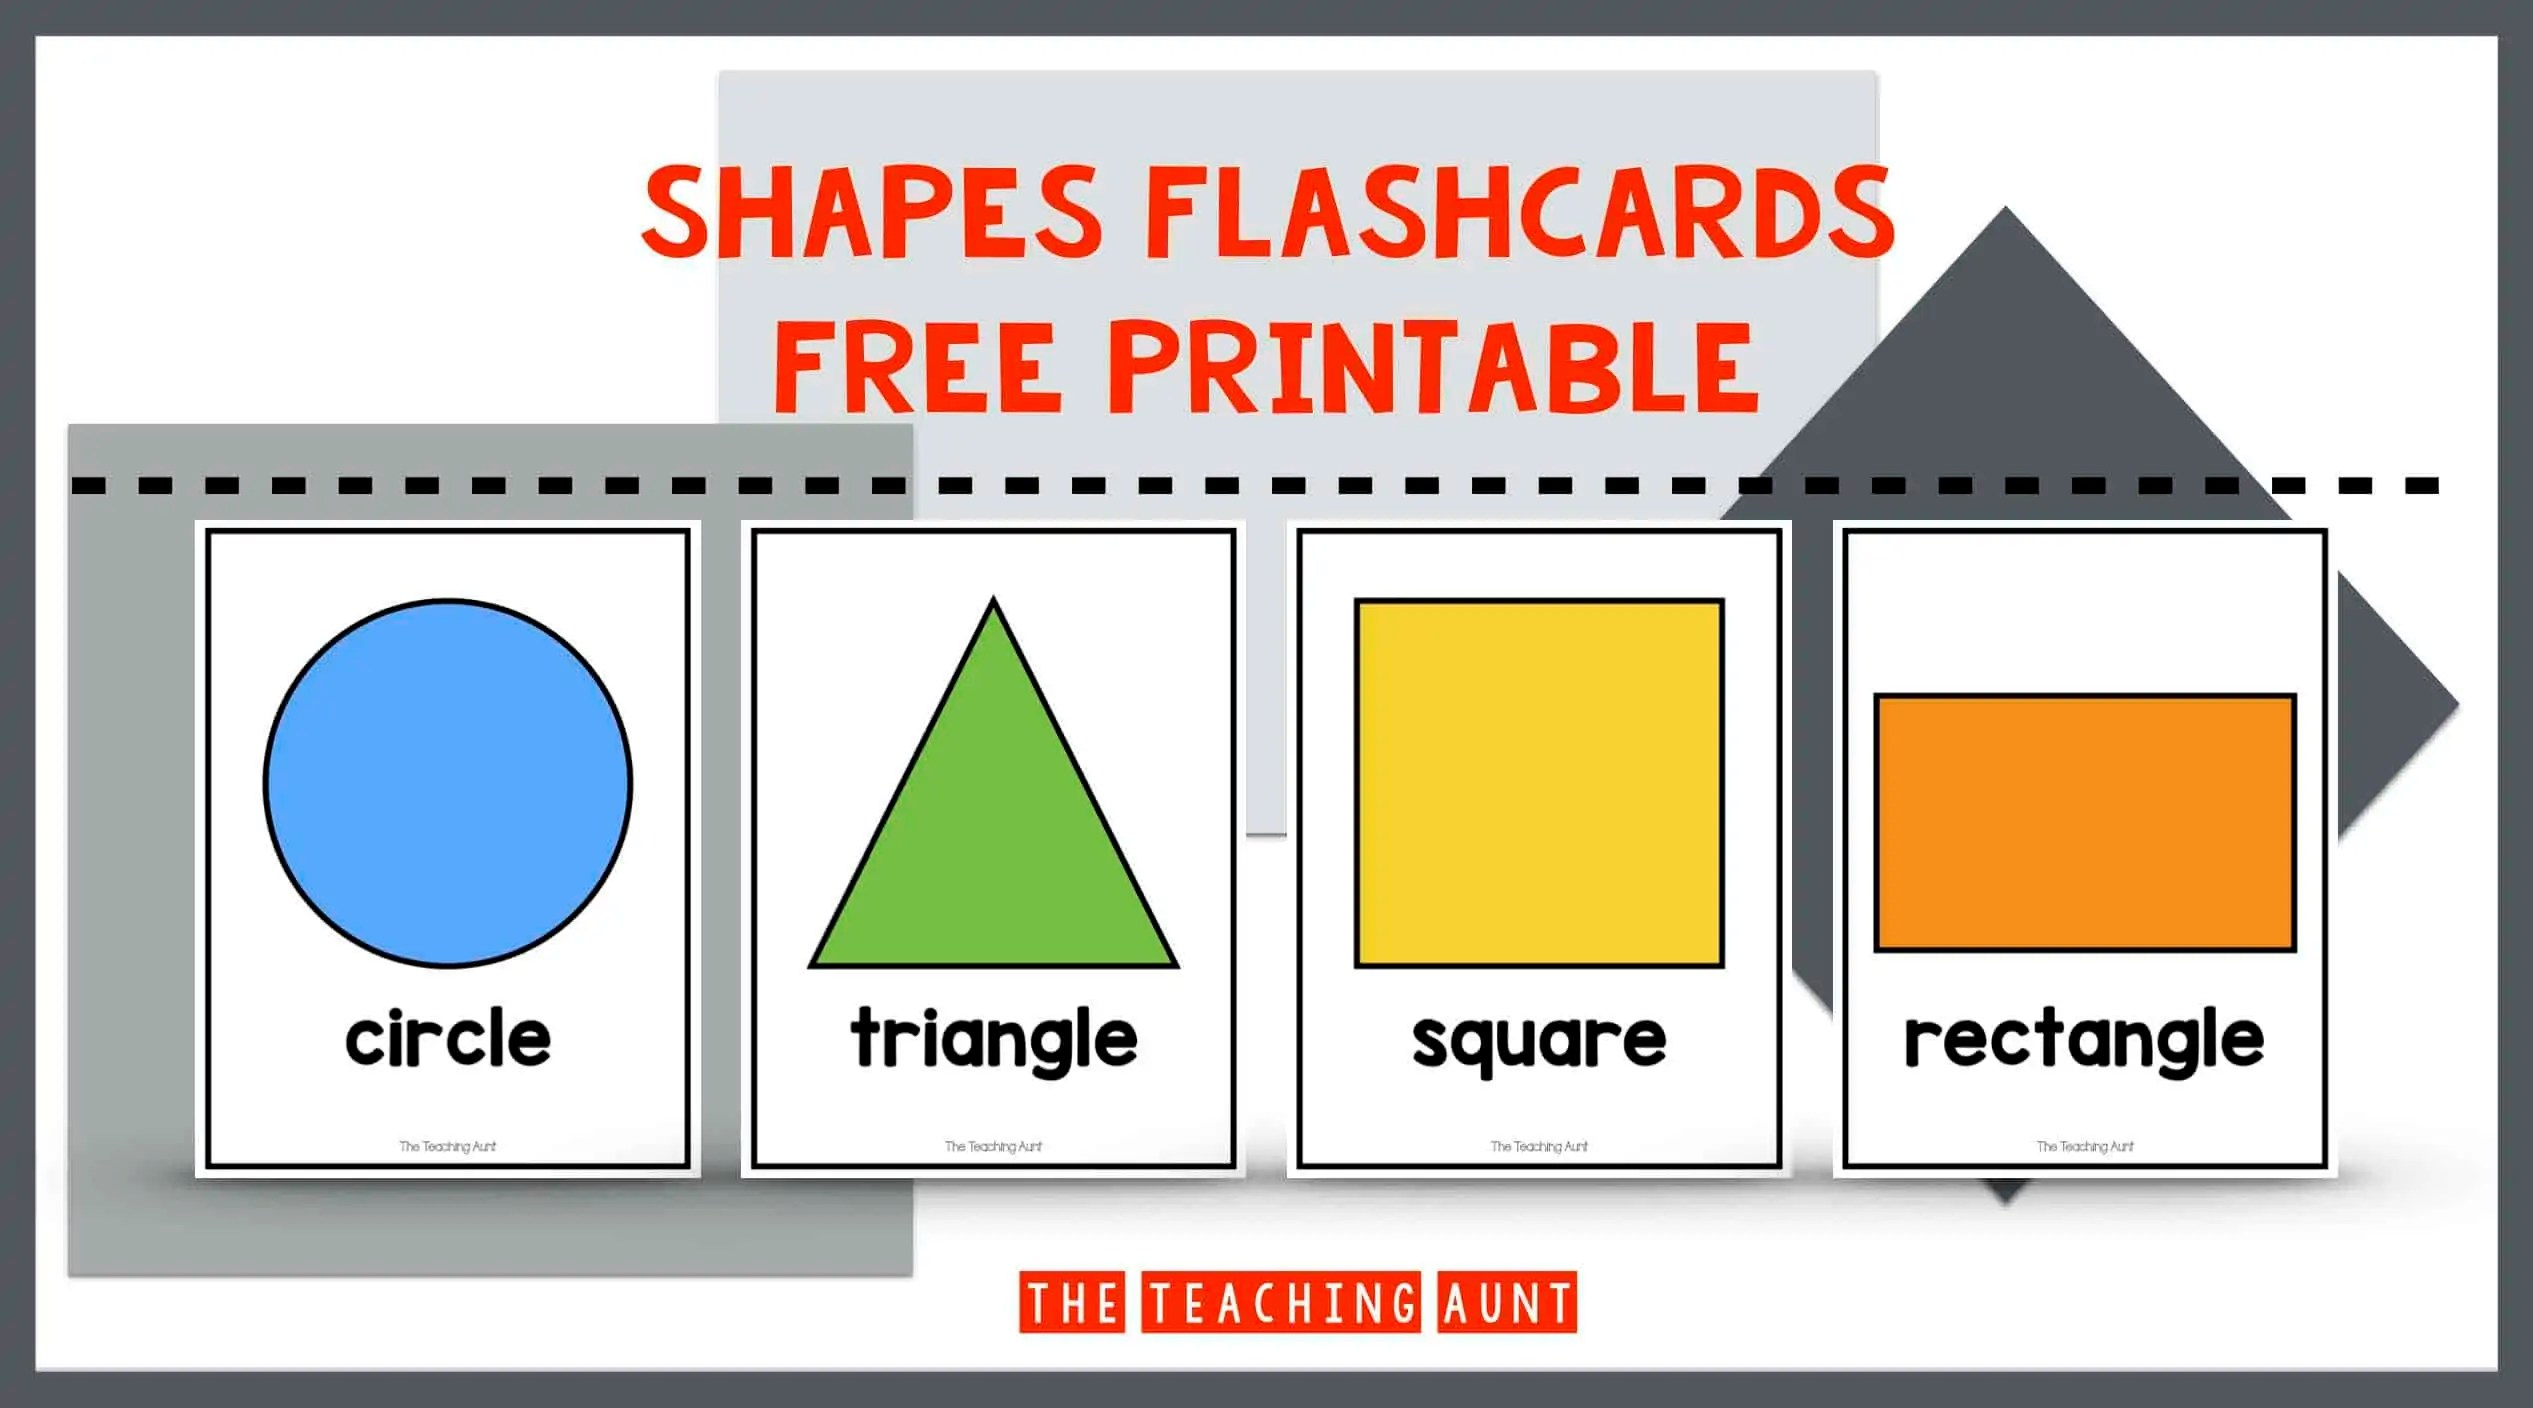 Shapes Flashcards Free Printable - The Teaching Aunt